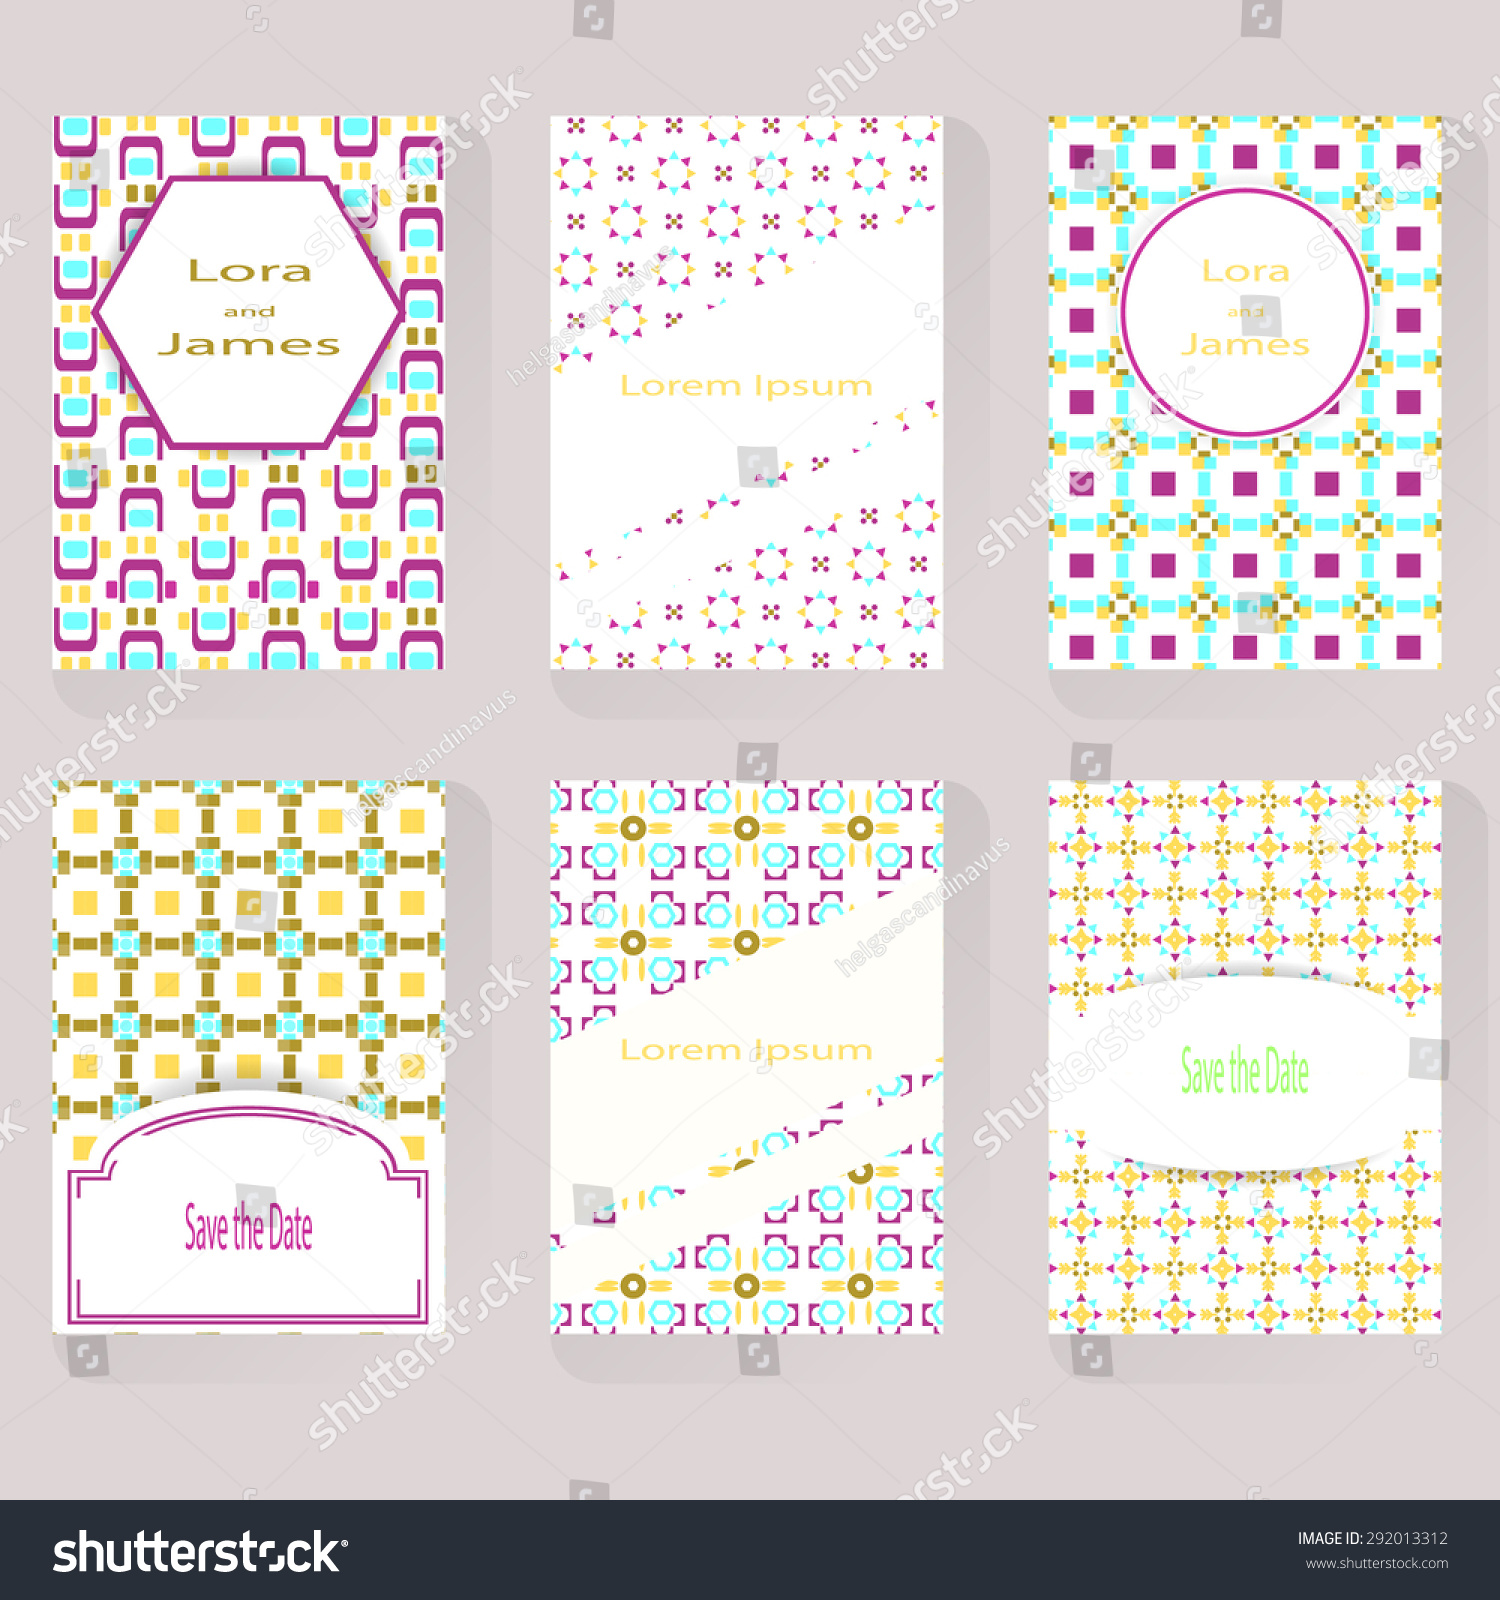 Comfortable Greeting Cards For Business Use Gallery - Business Card ...